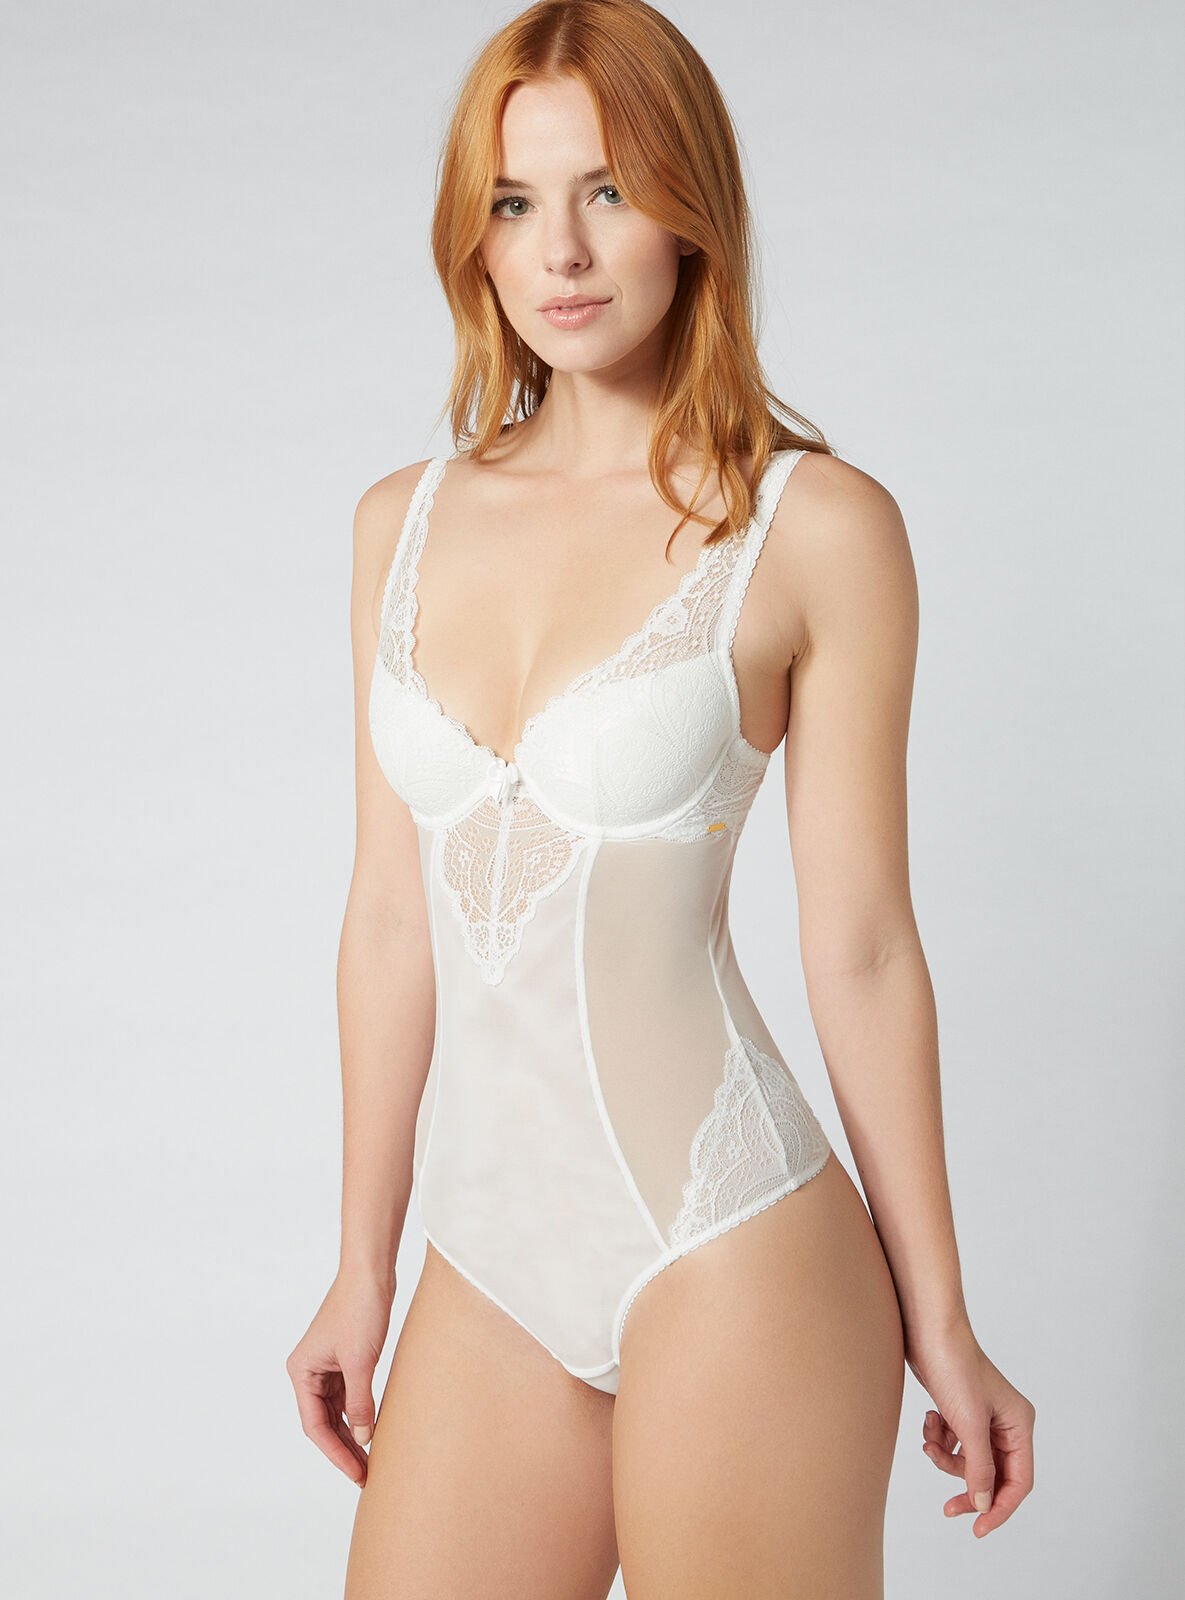 BouxAvenue Womens Tori Lace Body Boux Avenue Get Authentic Cheap Price 4YeICLaRO